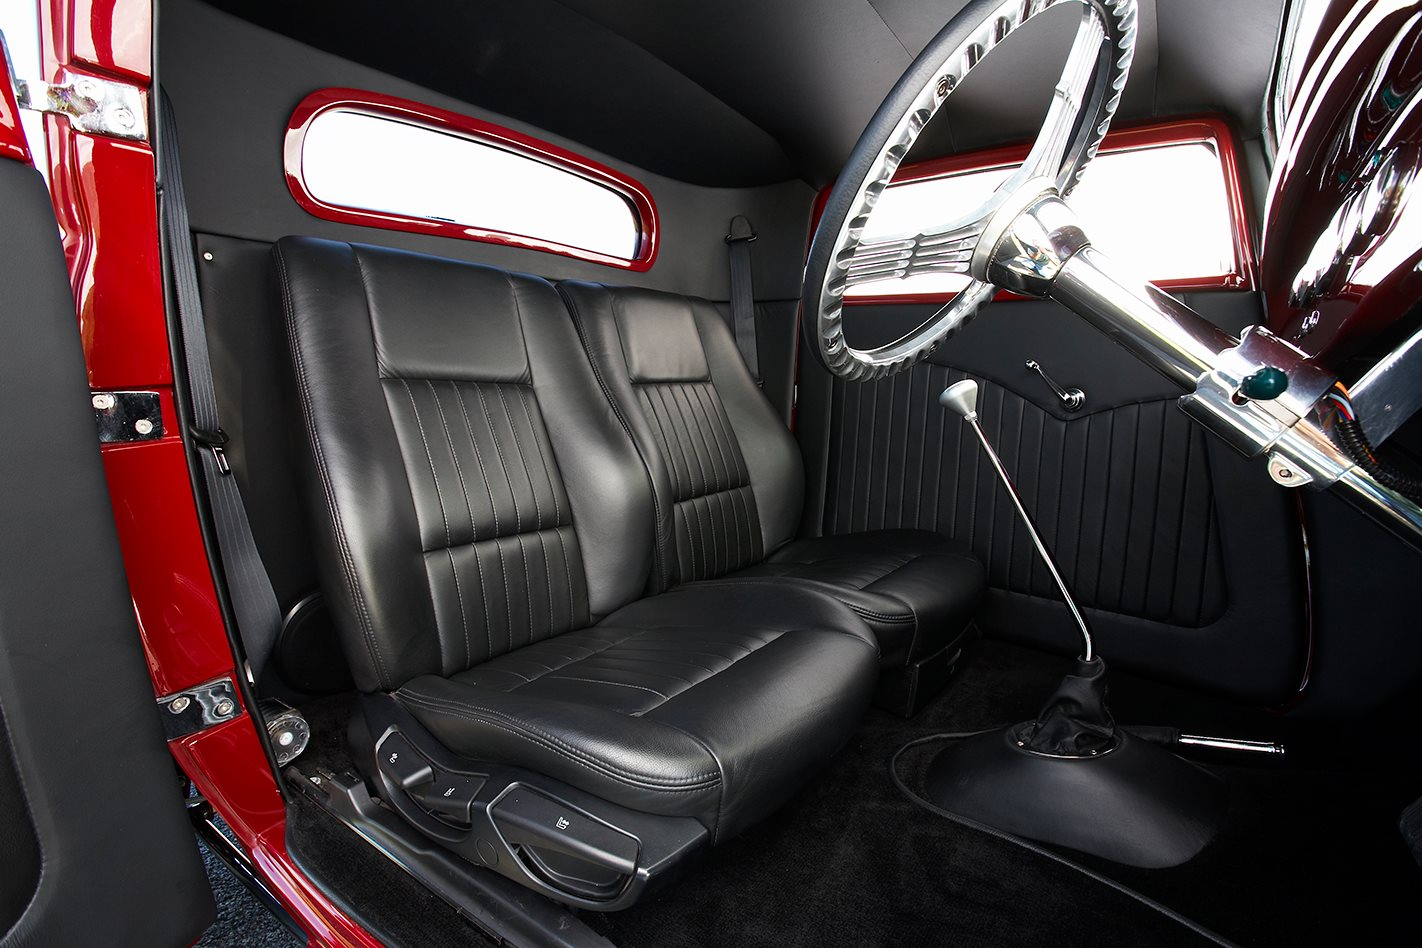 Elvis the GMC V12 hot-rod interior 2